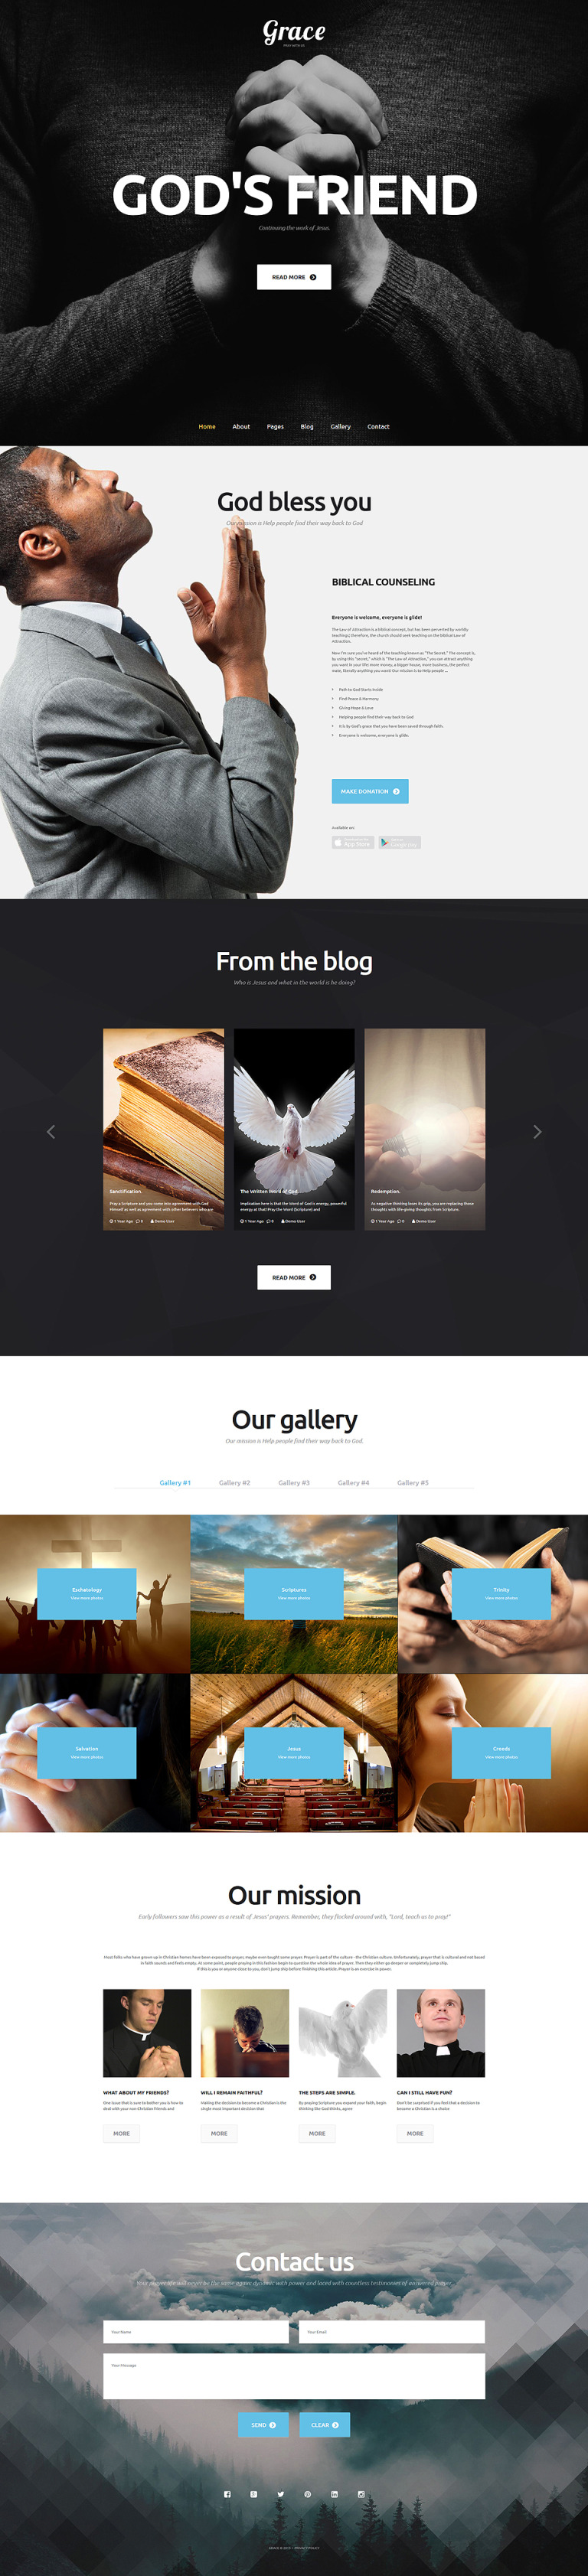 Grace Joomla Template New Screenshots BIG